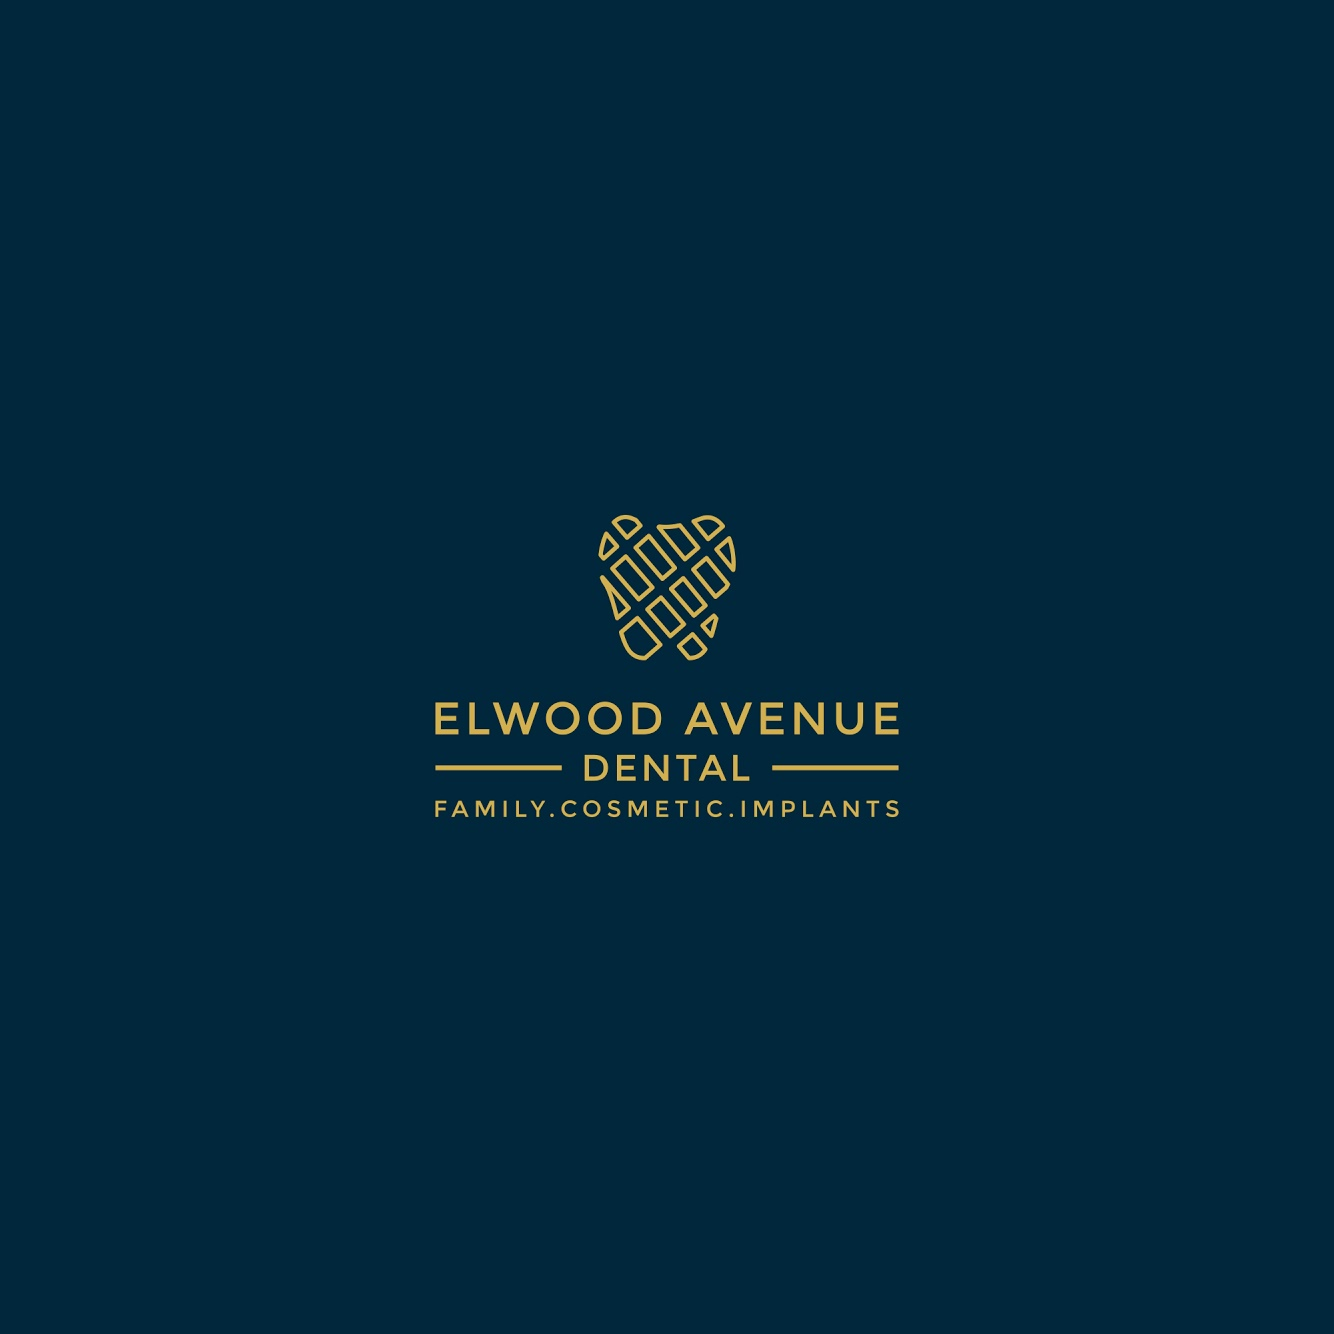 Elwood Avenue Dental